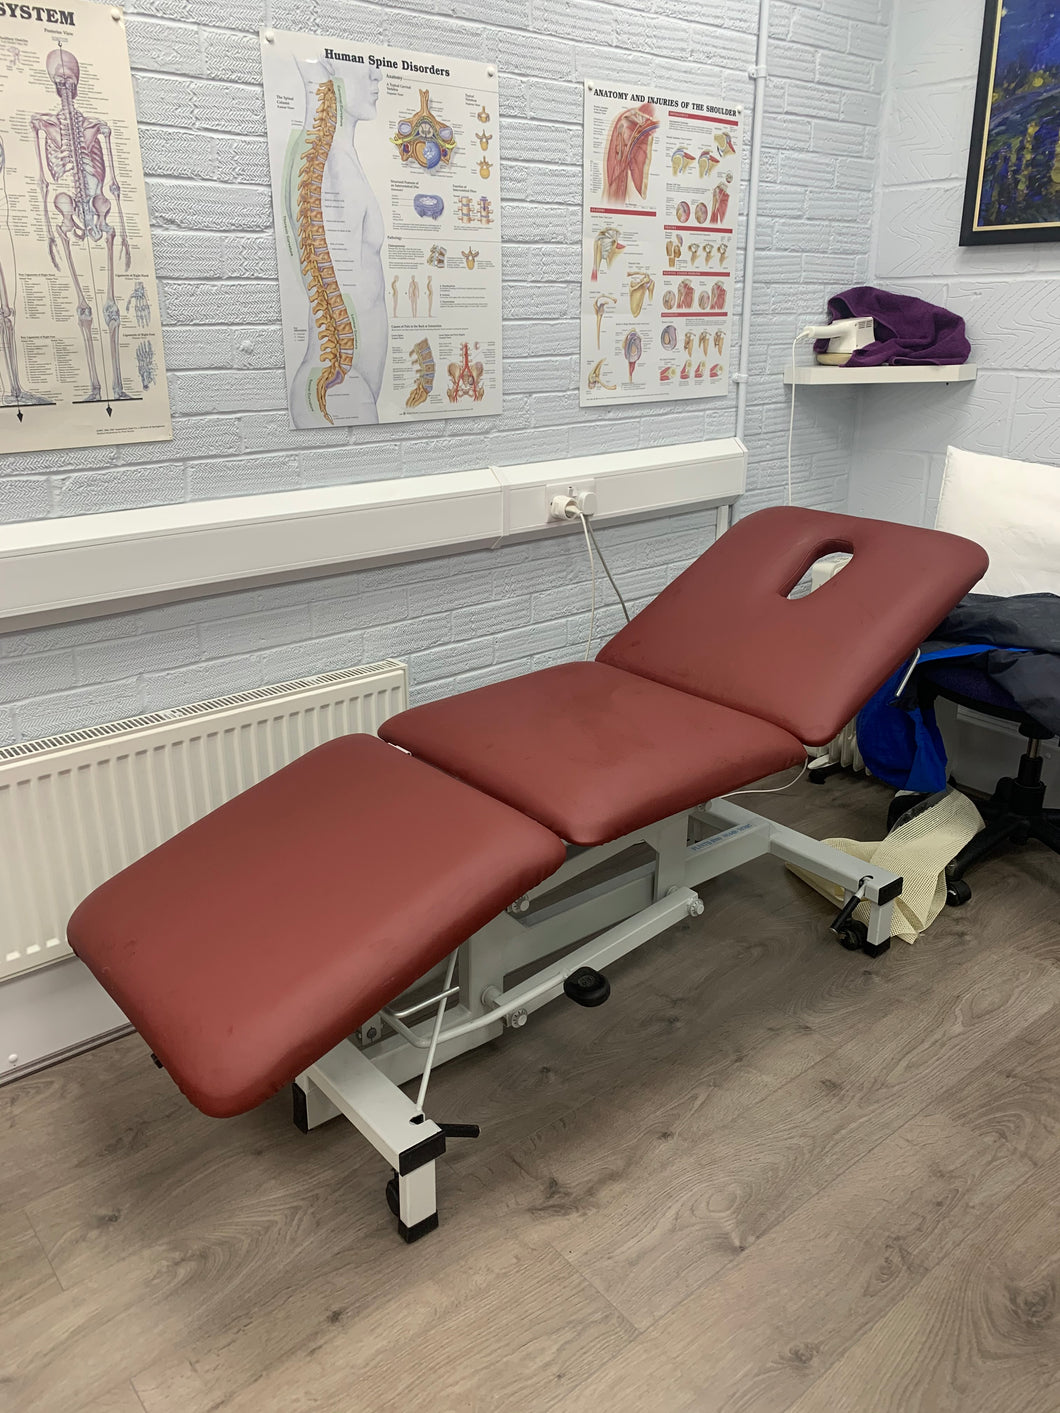 Reconditioned Three Section Hydraulic Medical / Physio / Treatment Couch with facehole